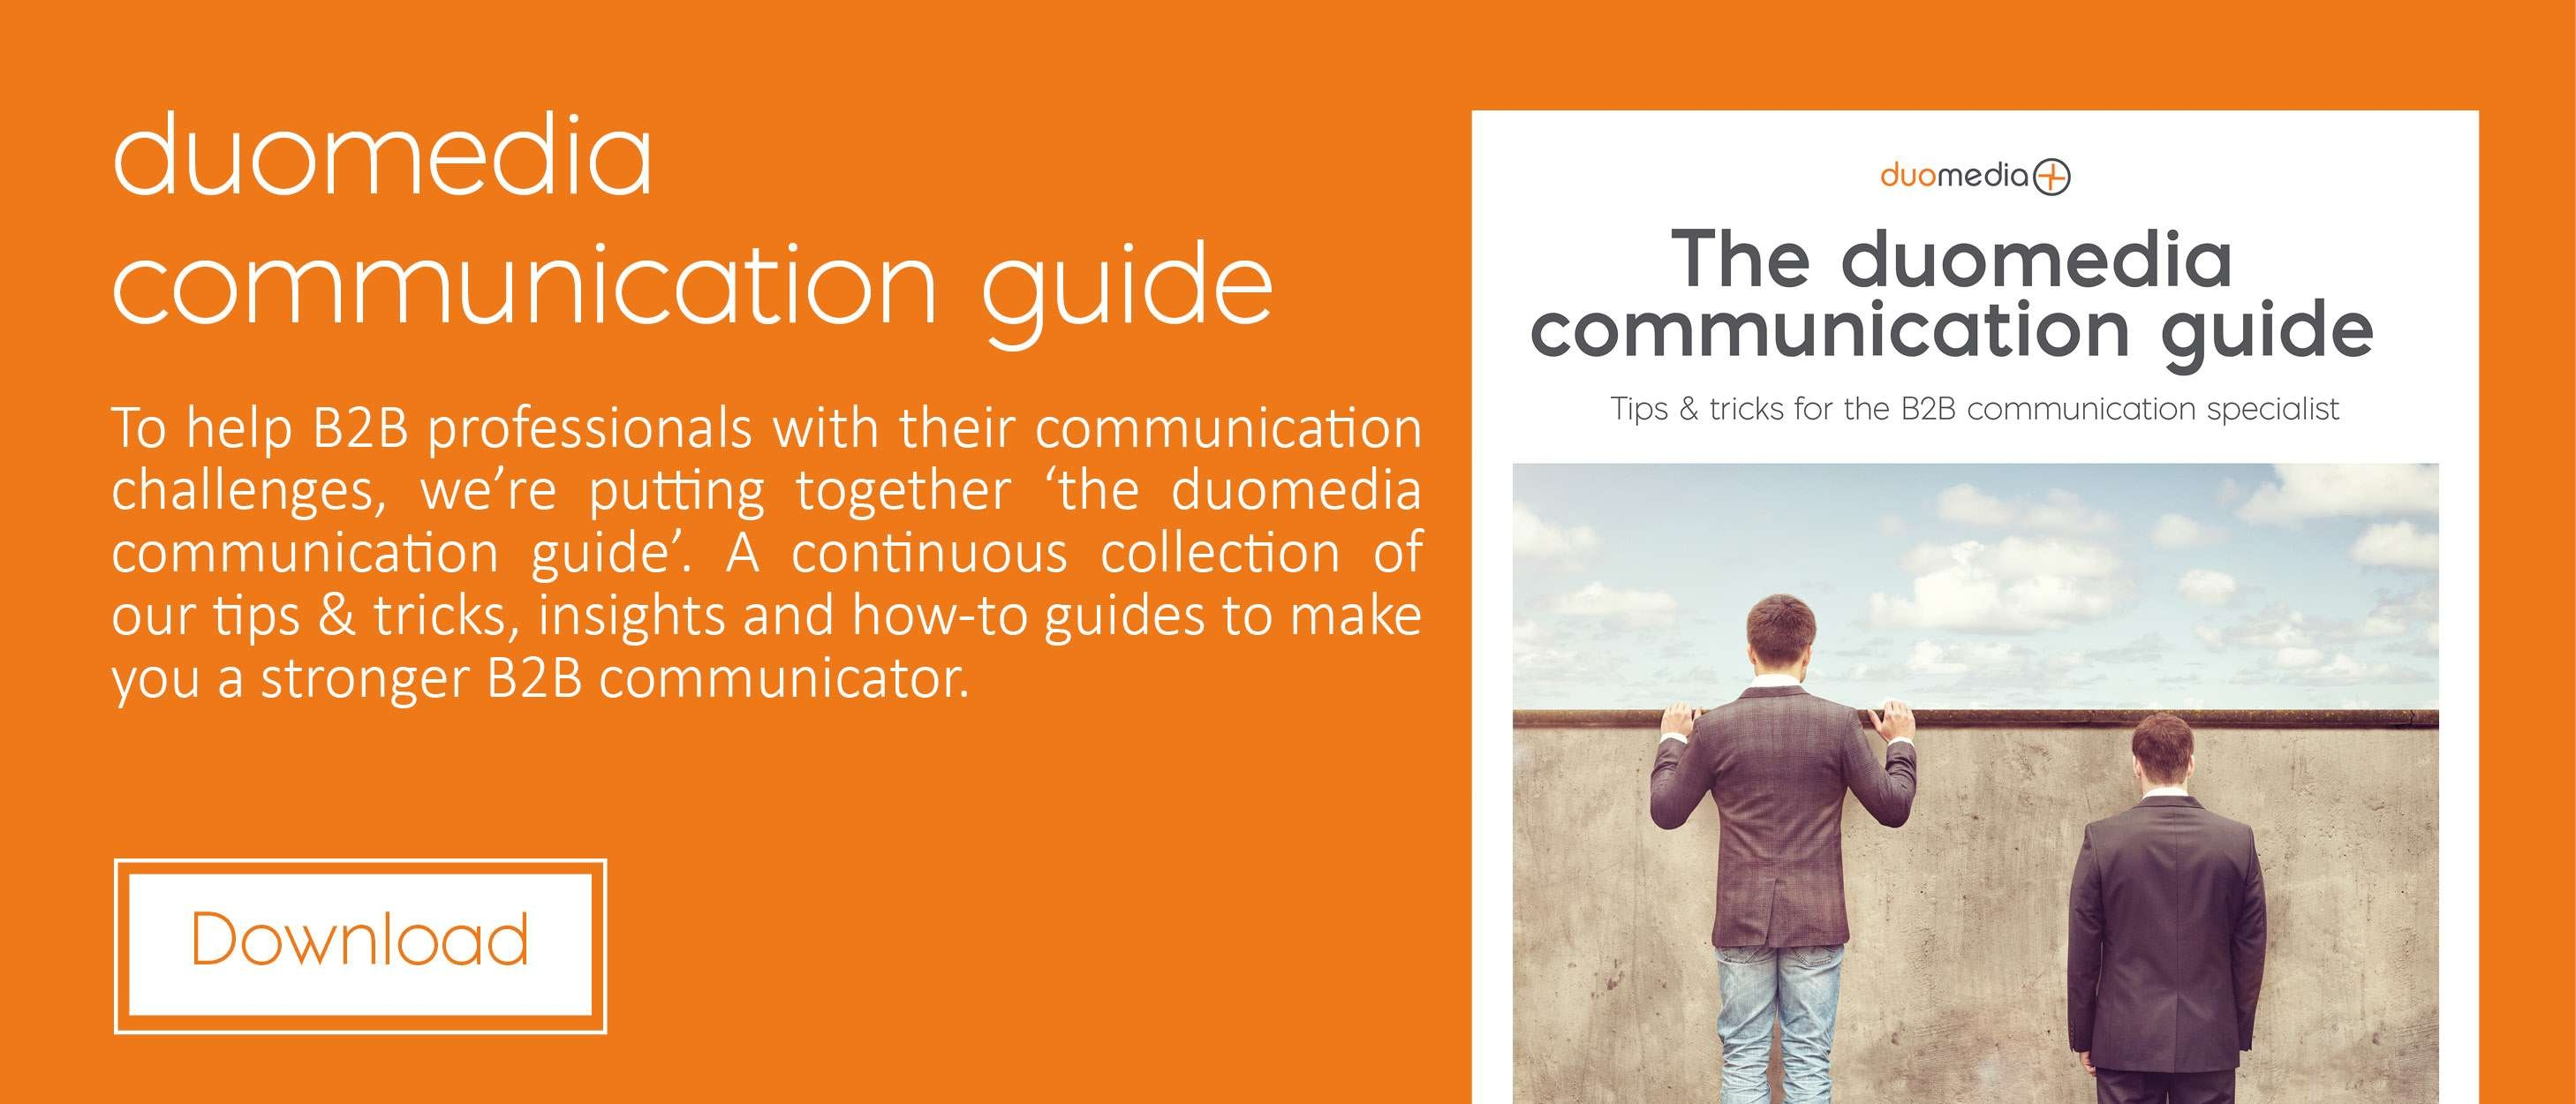 duomedia free communication guide